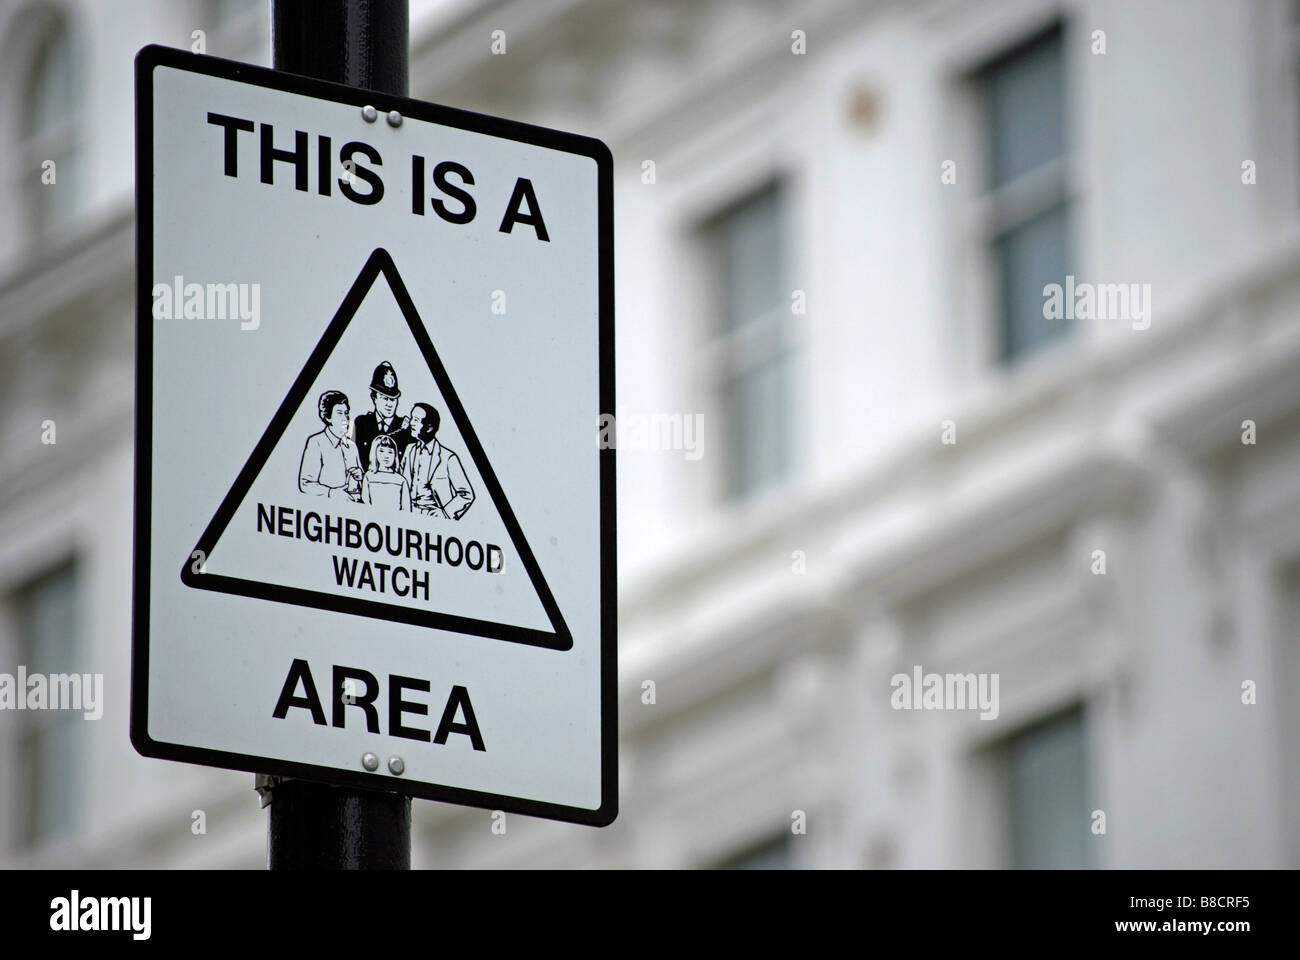 black and white neighbourhood watch sign in a street in kensington, london, england - Stock Image